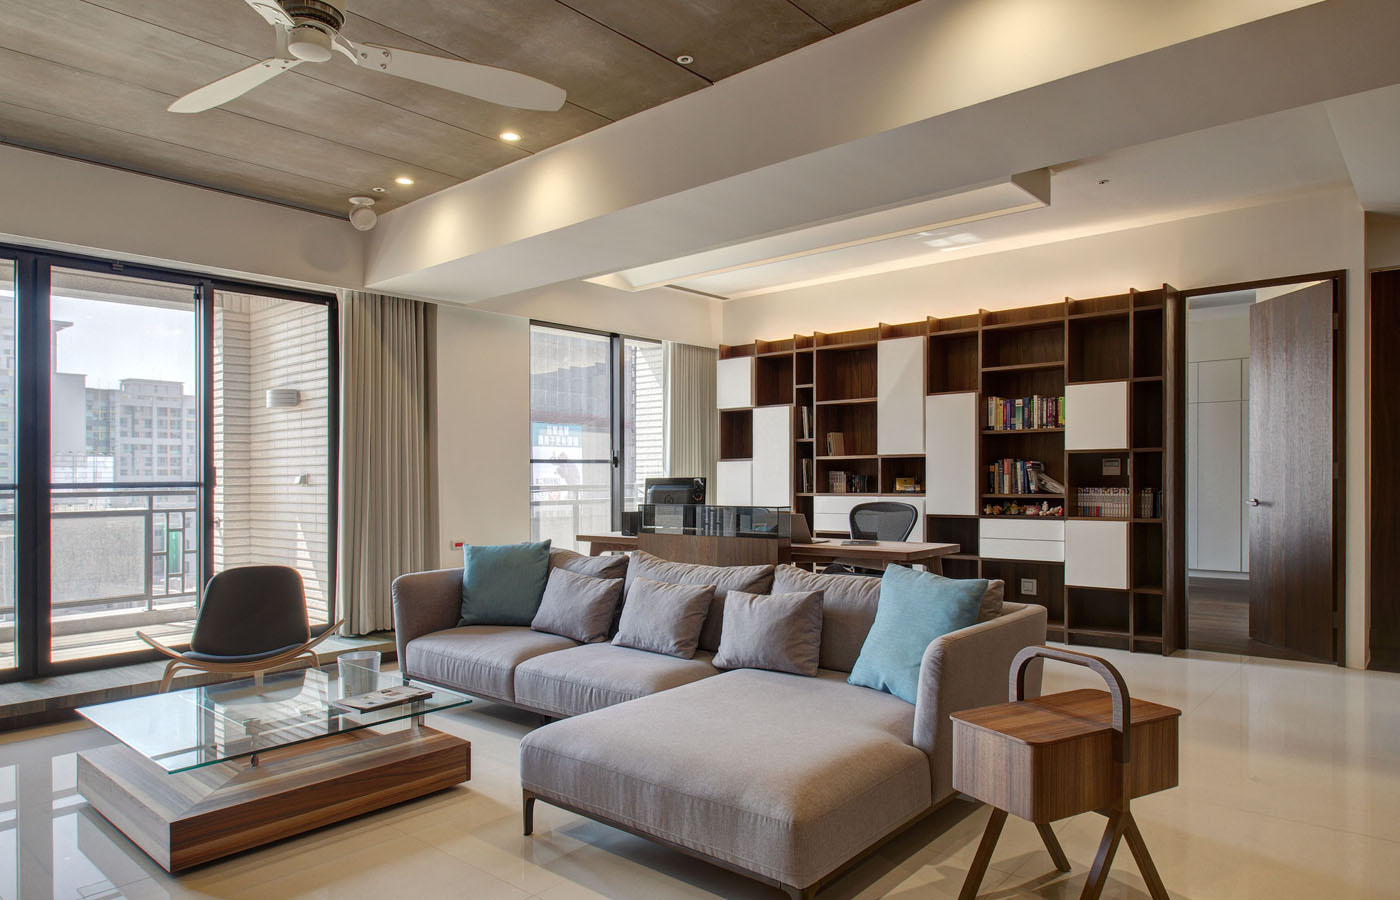 Home Decor Ideas For Small Apartments